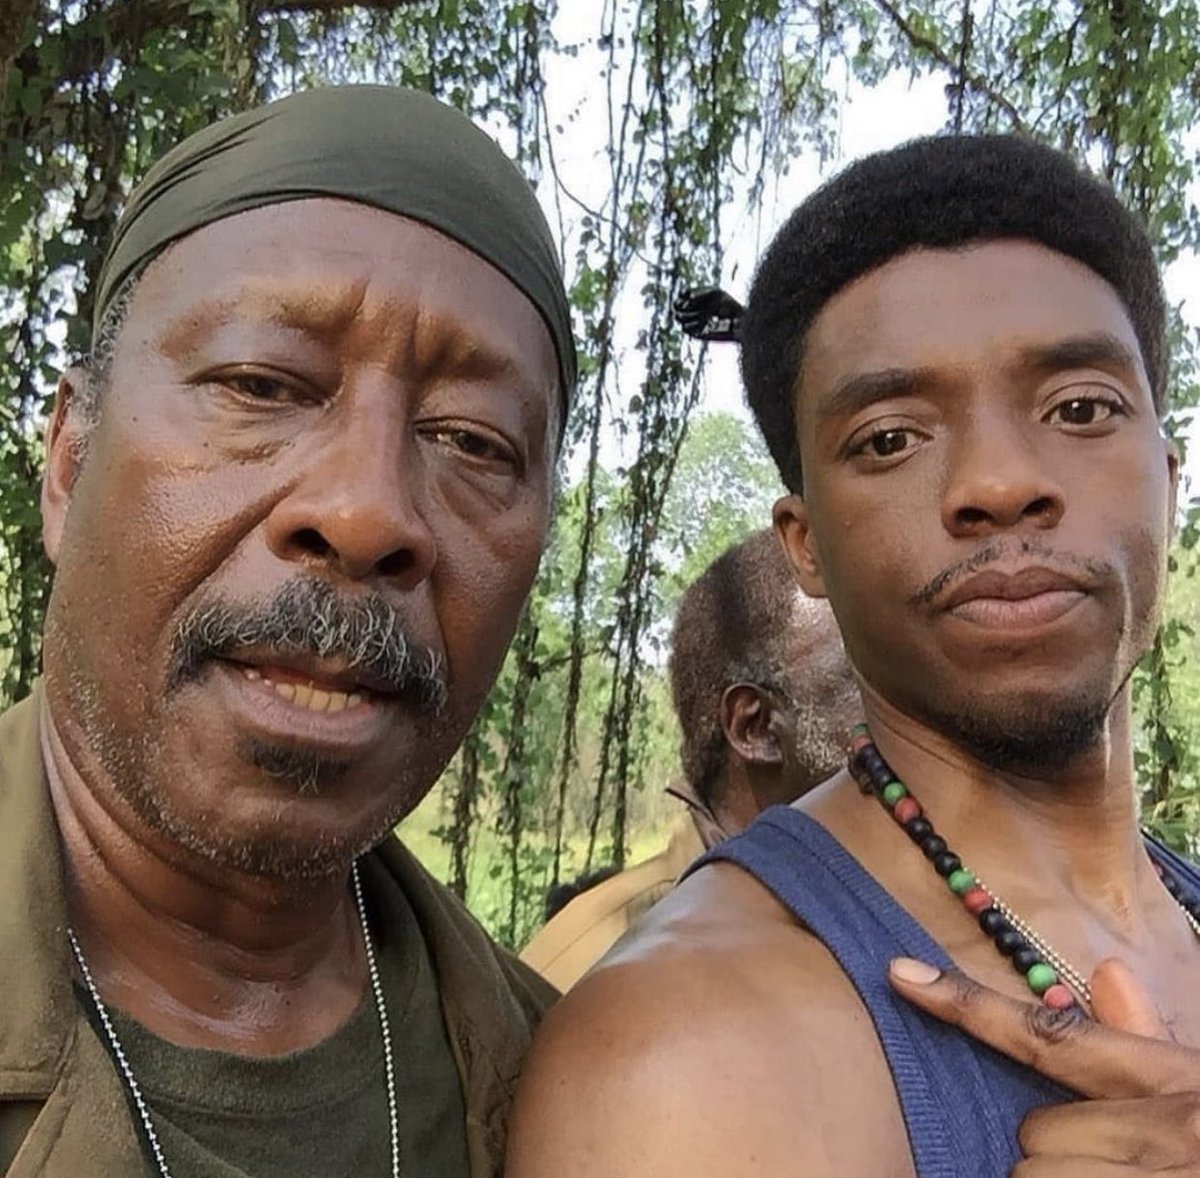 The beauties of filming.  Always wanted to be Wired with this guy. @clarkepeters  #da5bloods https://t.co/zc3a7KWBFI